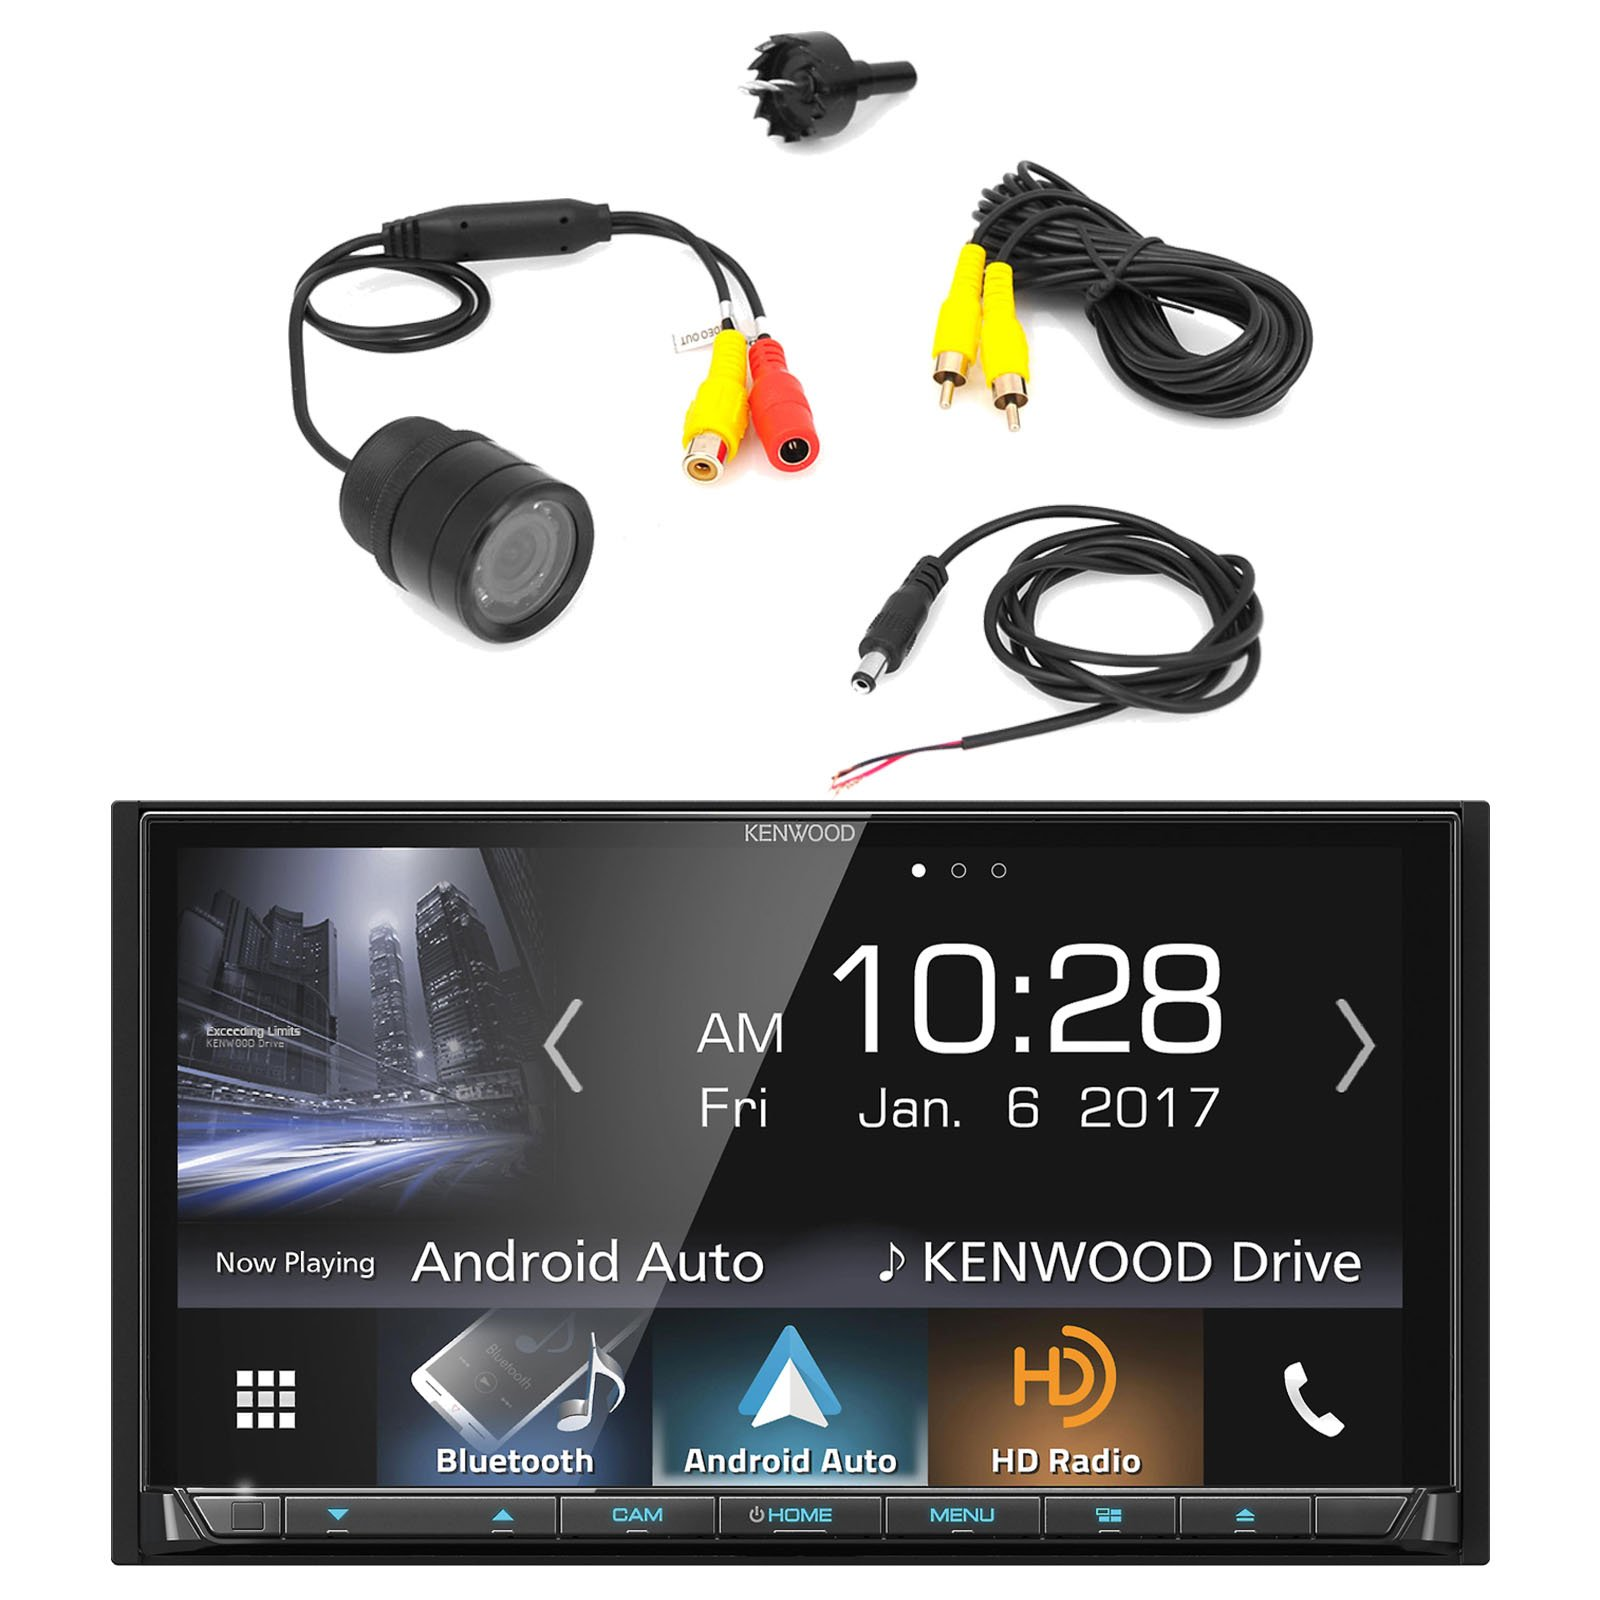 Kenwood DDX9704S 2-DIN In-Dash DVD/CD/AM/FM Car Stereo Receiver with PYLE PLCM22IR Flush Mount Rear View Camera with 0.5 Lux Night Vision